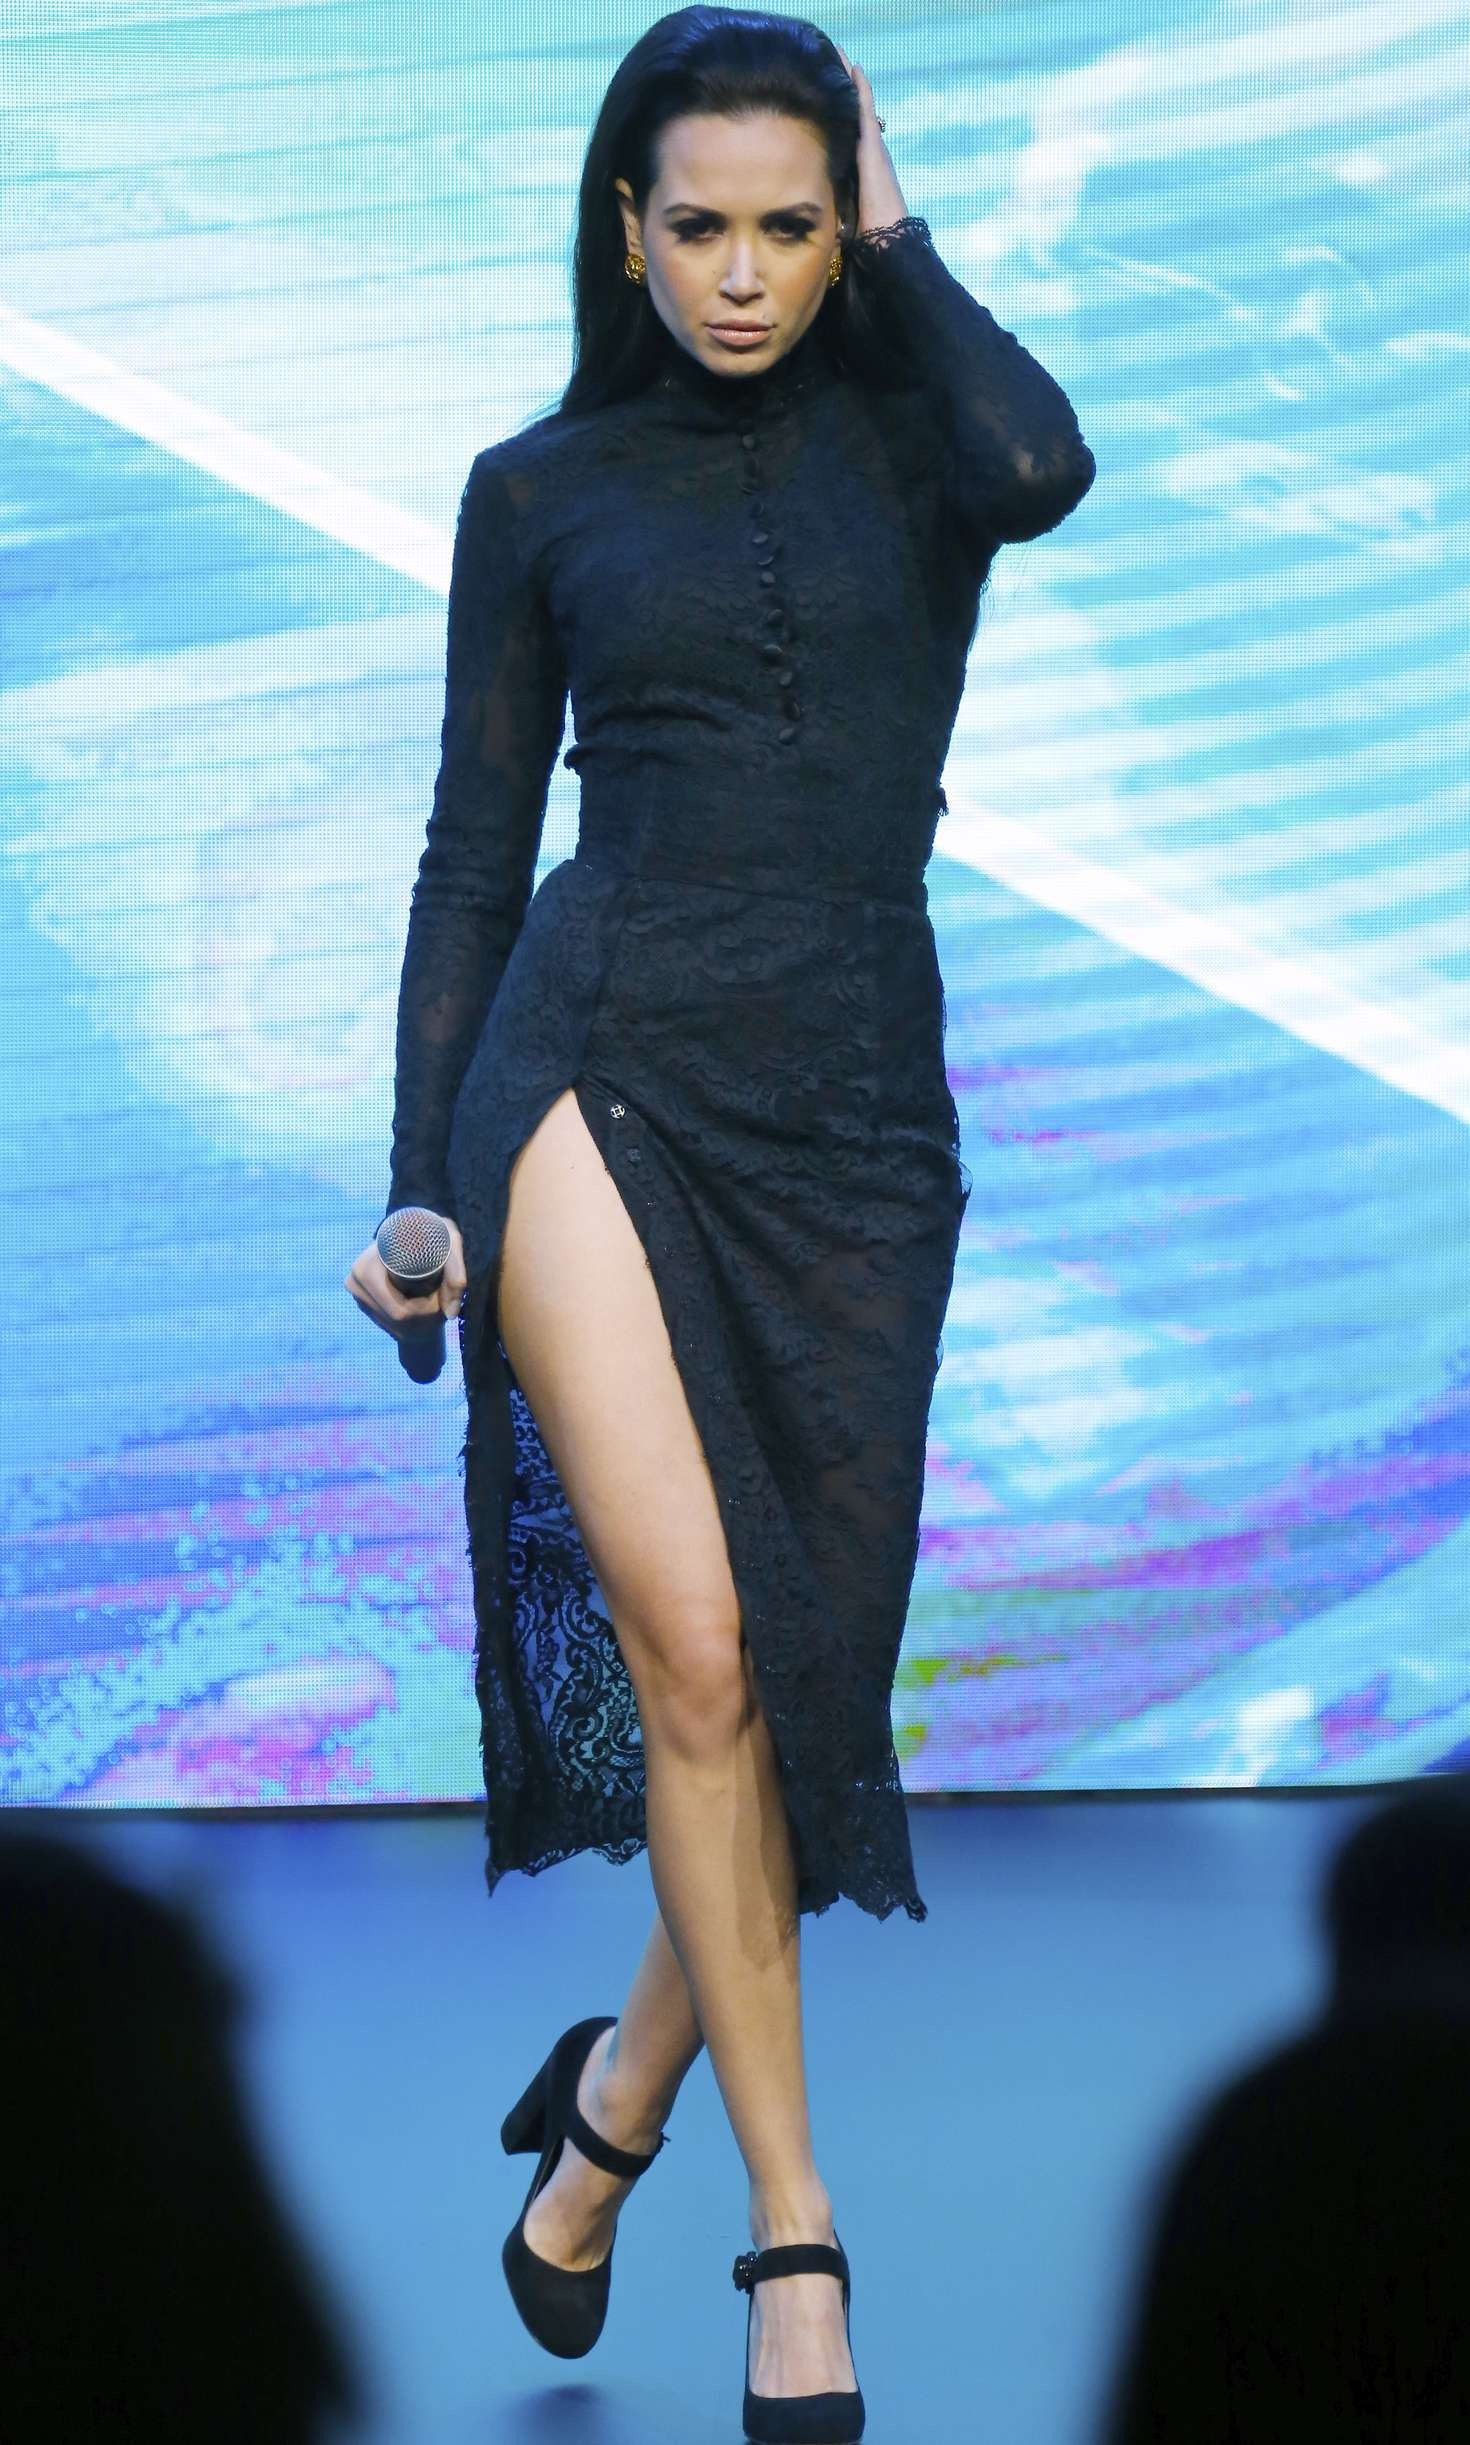 Mandy Capristo - Performs at the Mercedes-Benz New GLC Launch in New York City